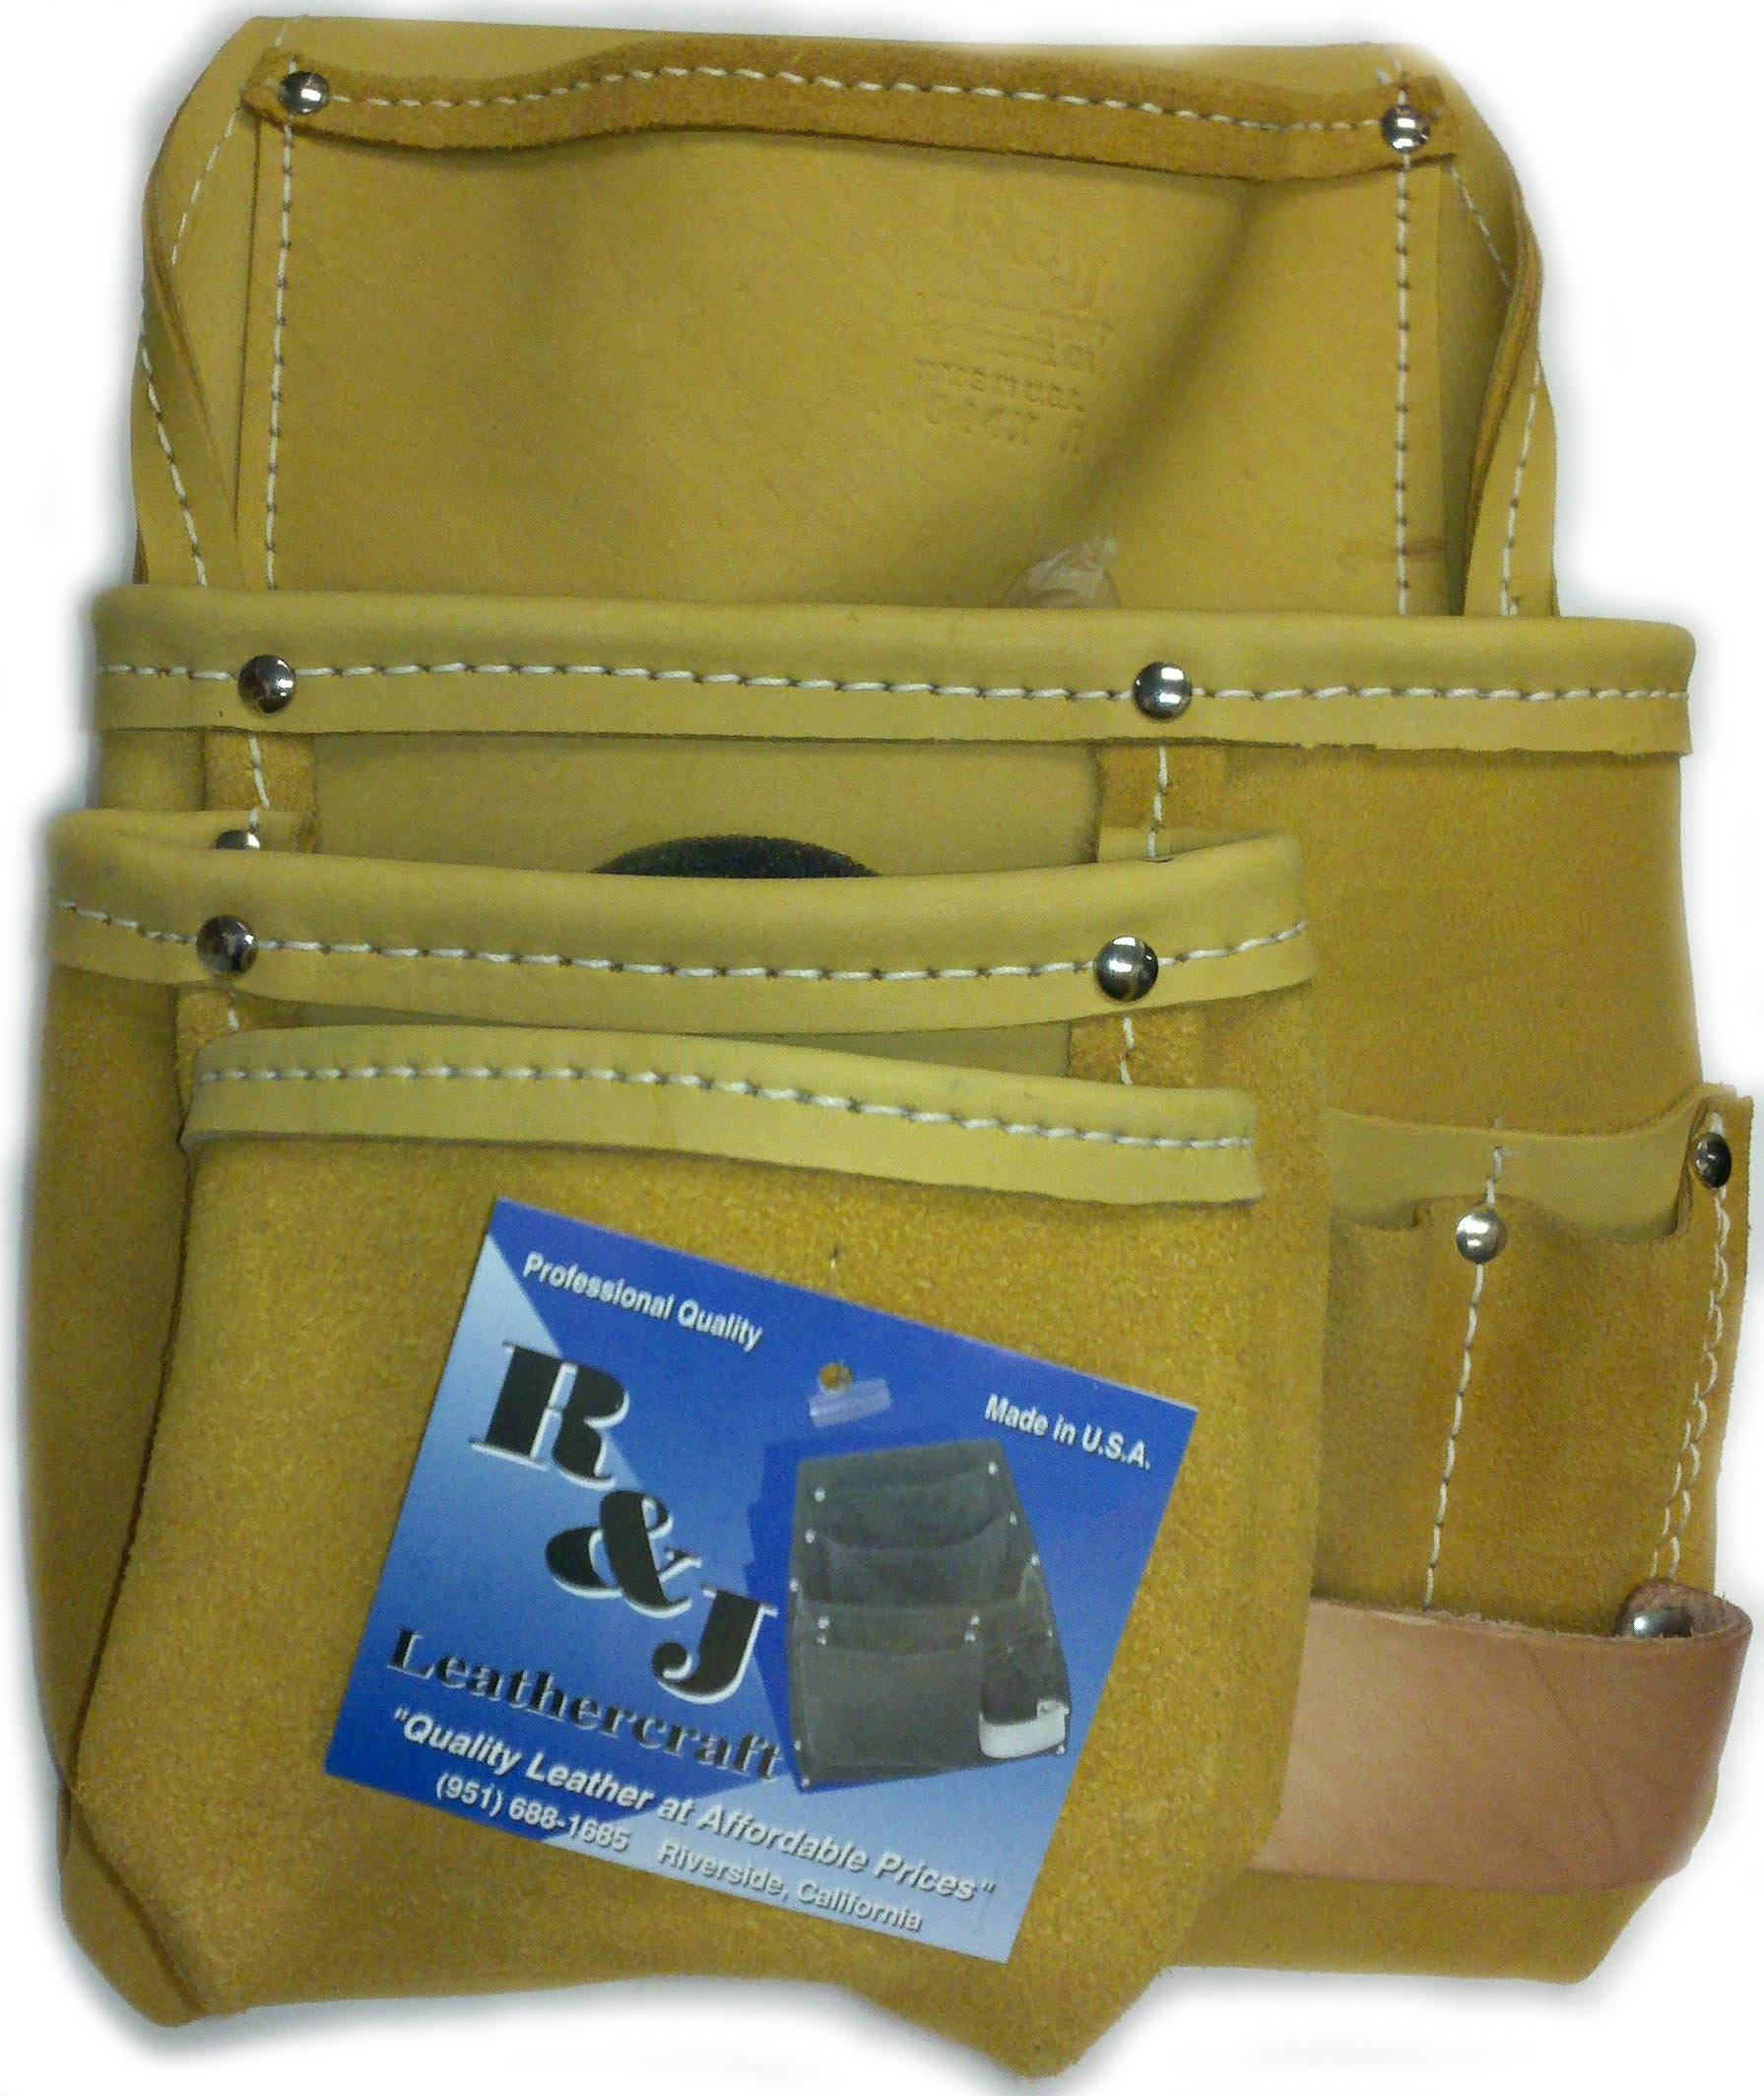 R&J Leathercraft 4-Pocket Extra Large Carpenter Tool Pouch-Right #644XR, Made in USA***